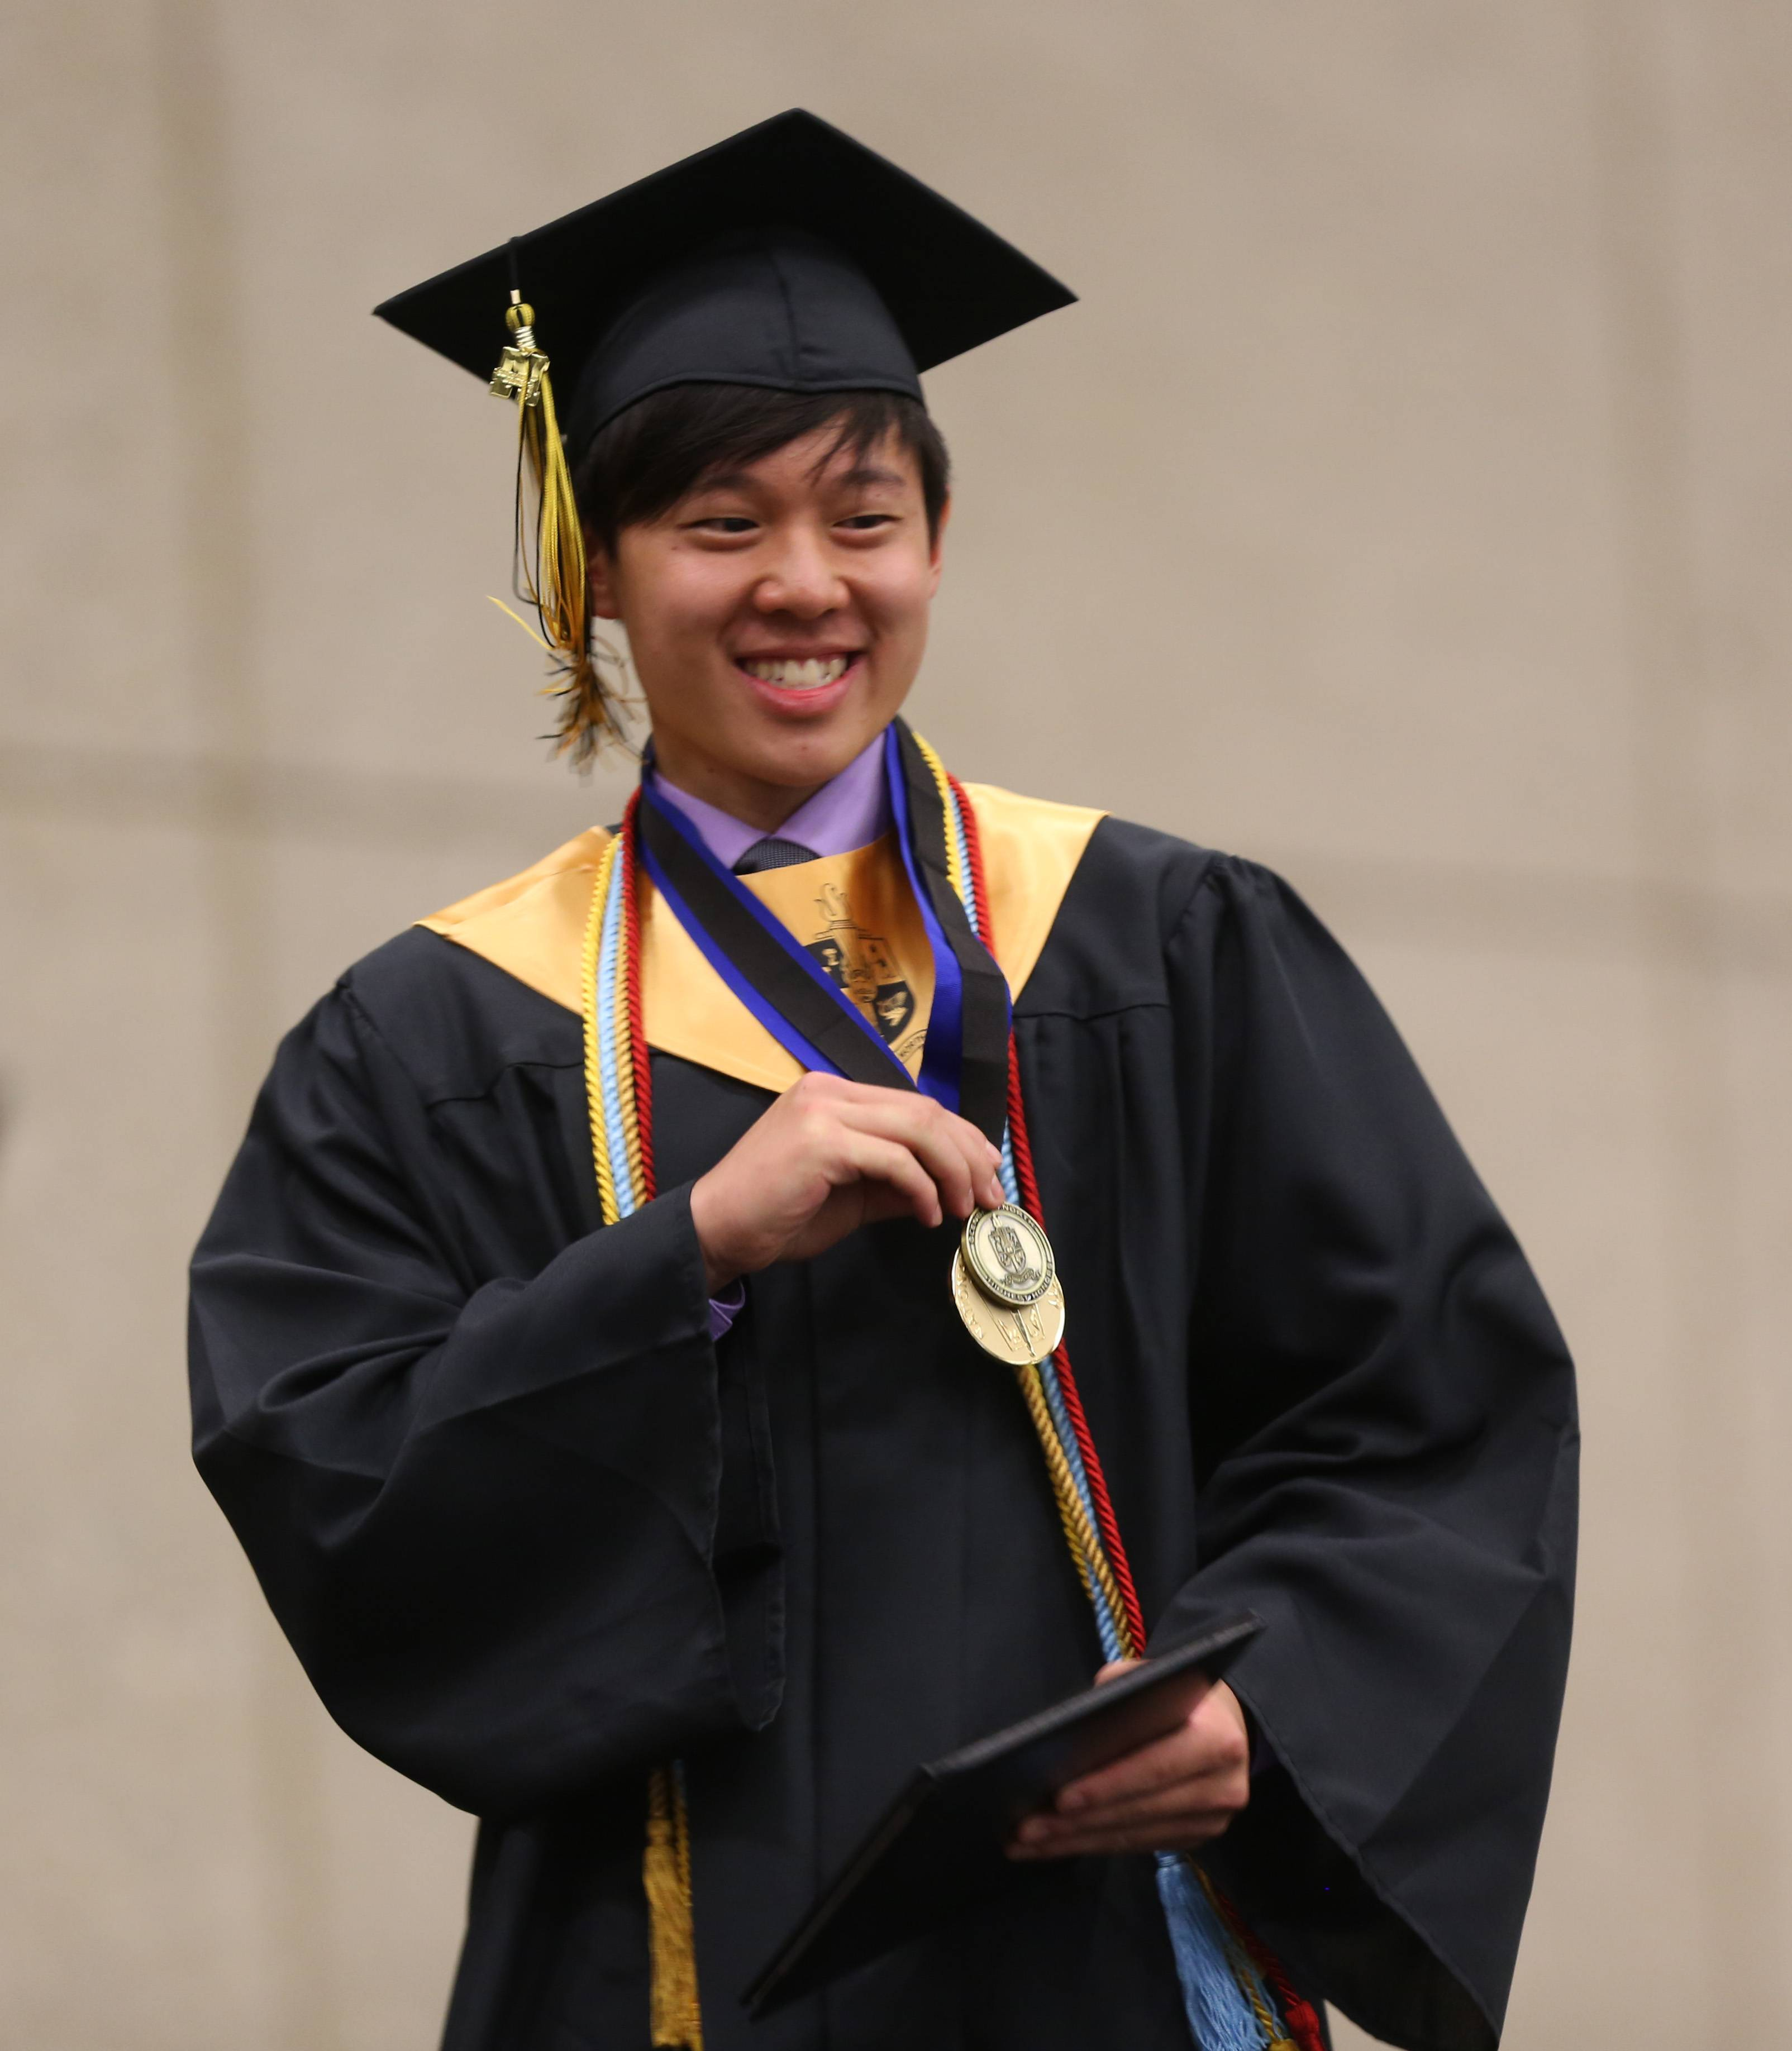 Glenbard North High School held its graduation Saturday, June 7 at the College of DuPage in Glen Ellyn.